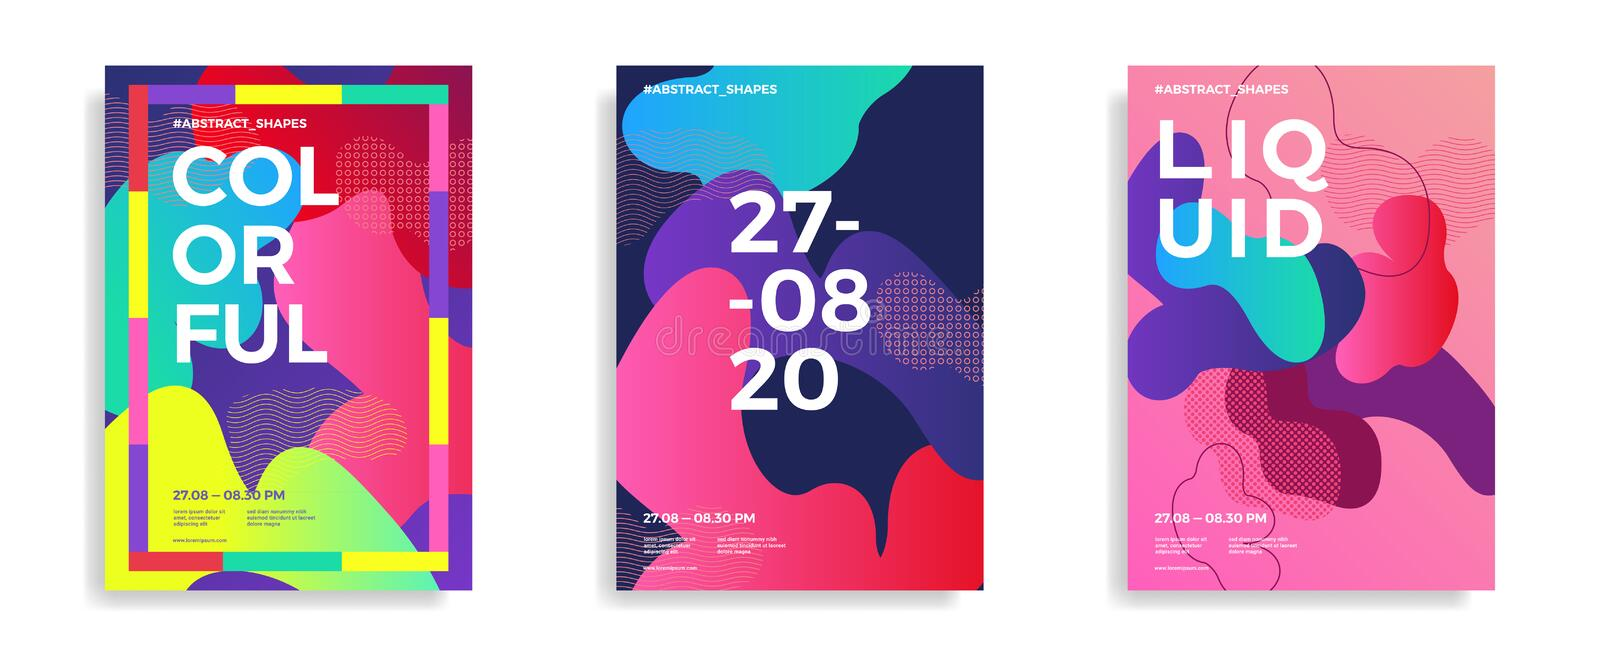 Trendy design templates with fluid gradient shapes royalty free illustration